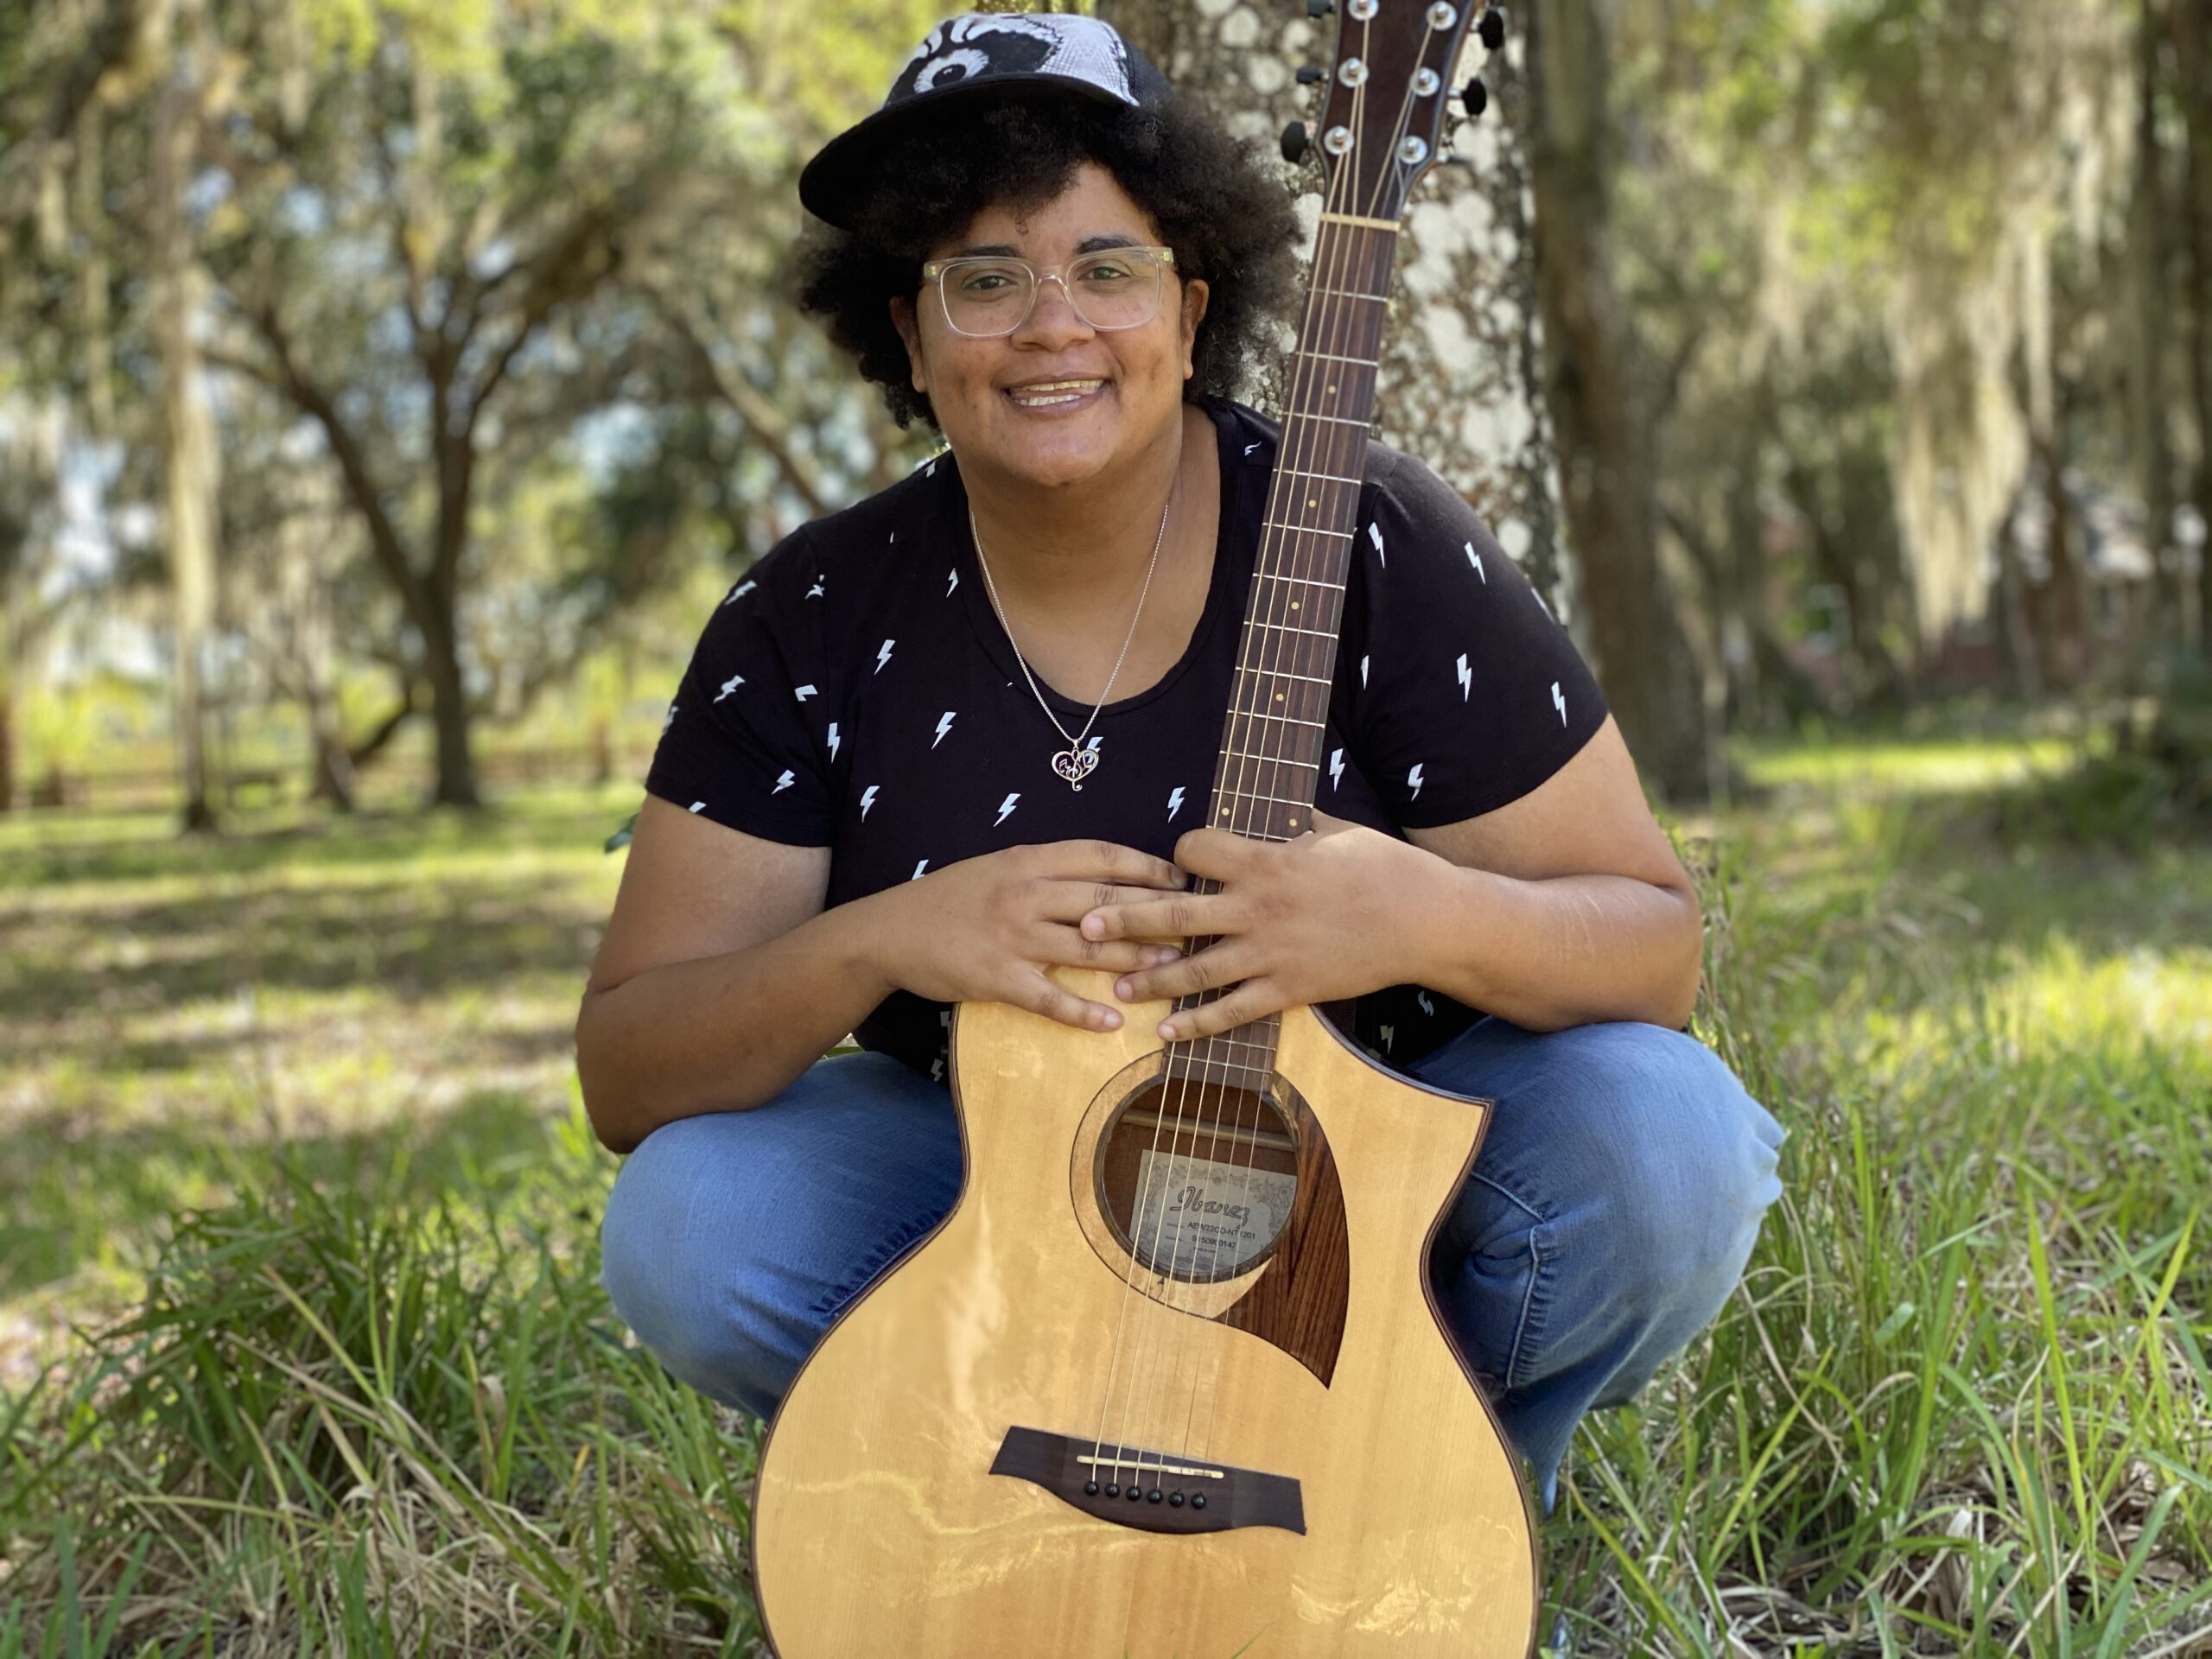 Local artist to celebrate album release during Music Compound concert